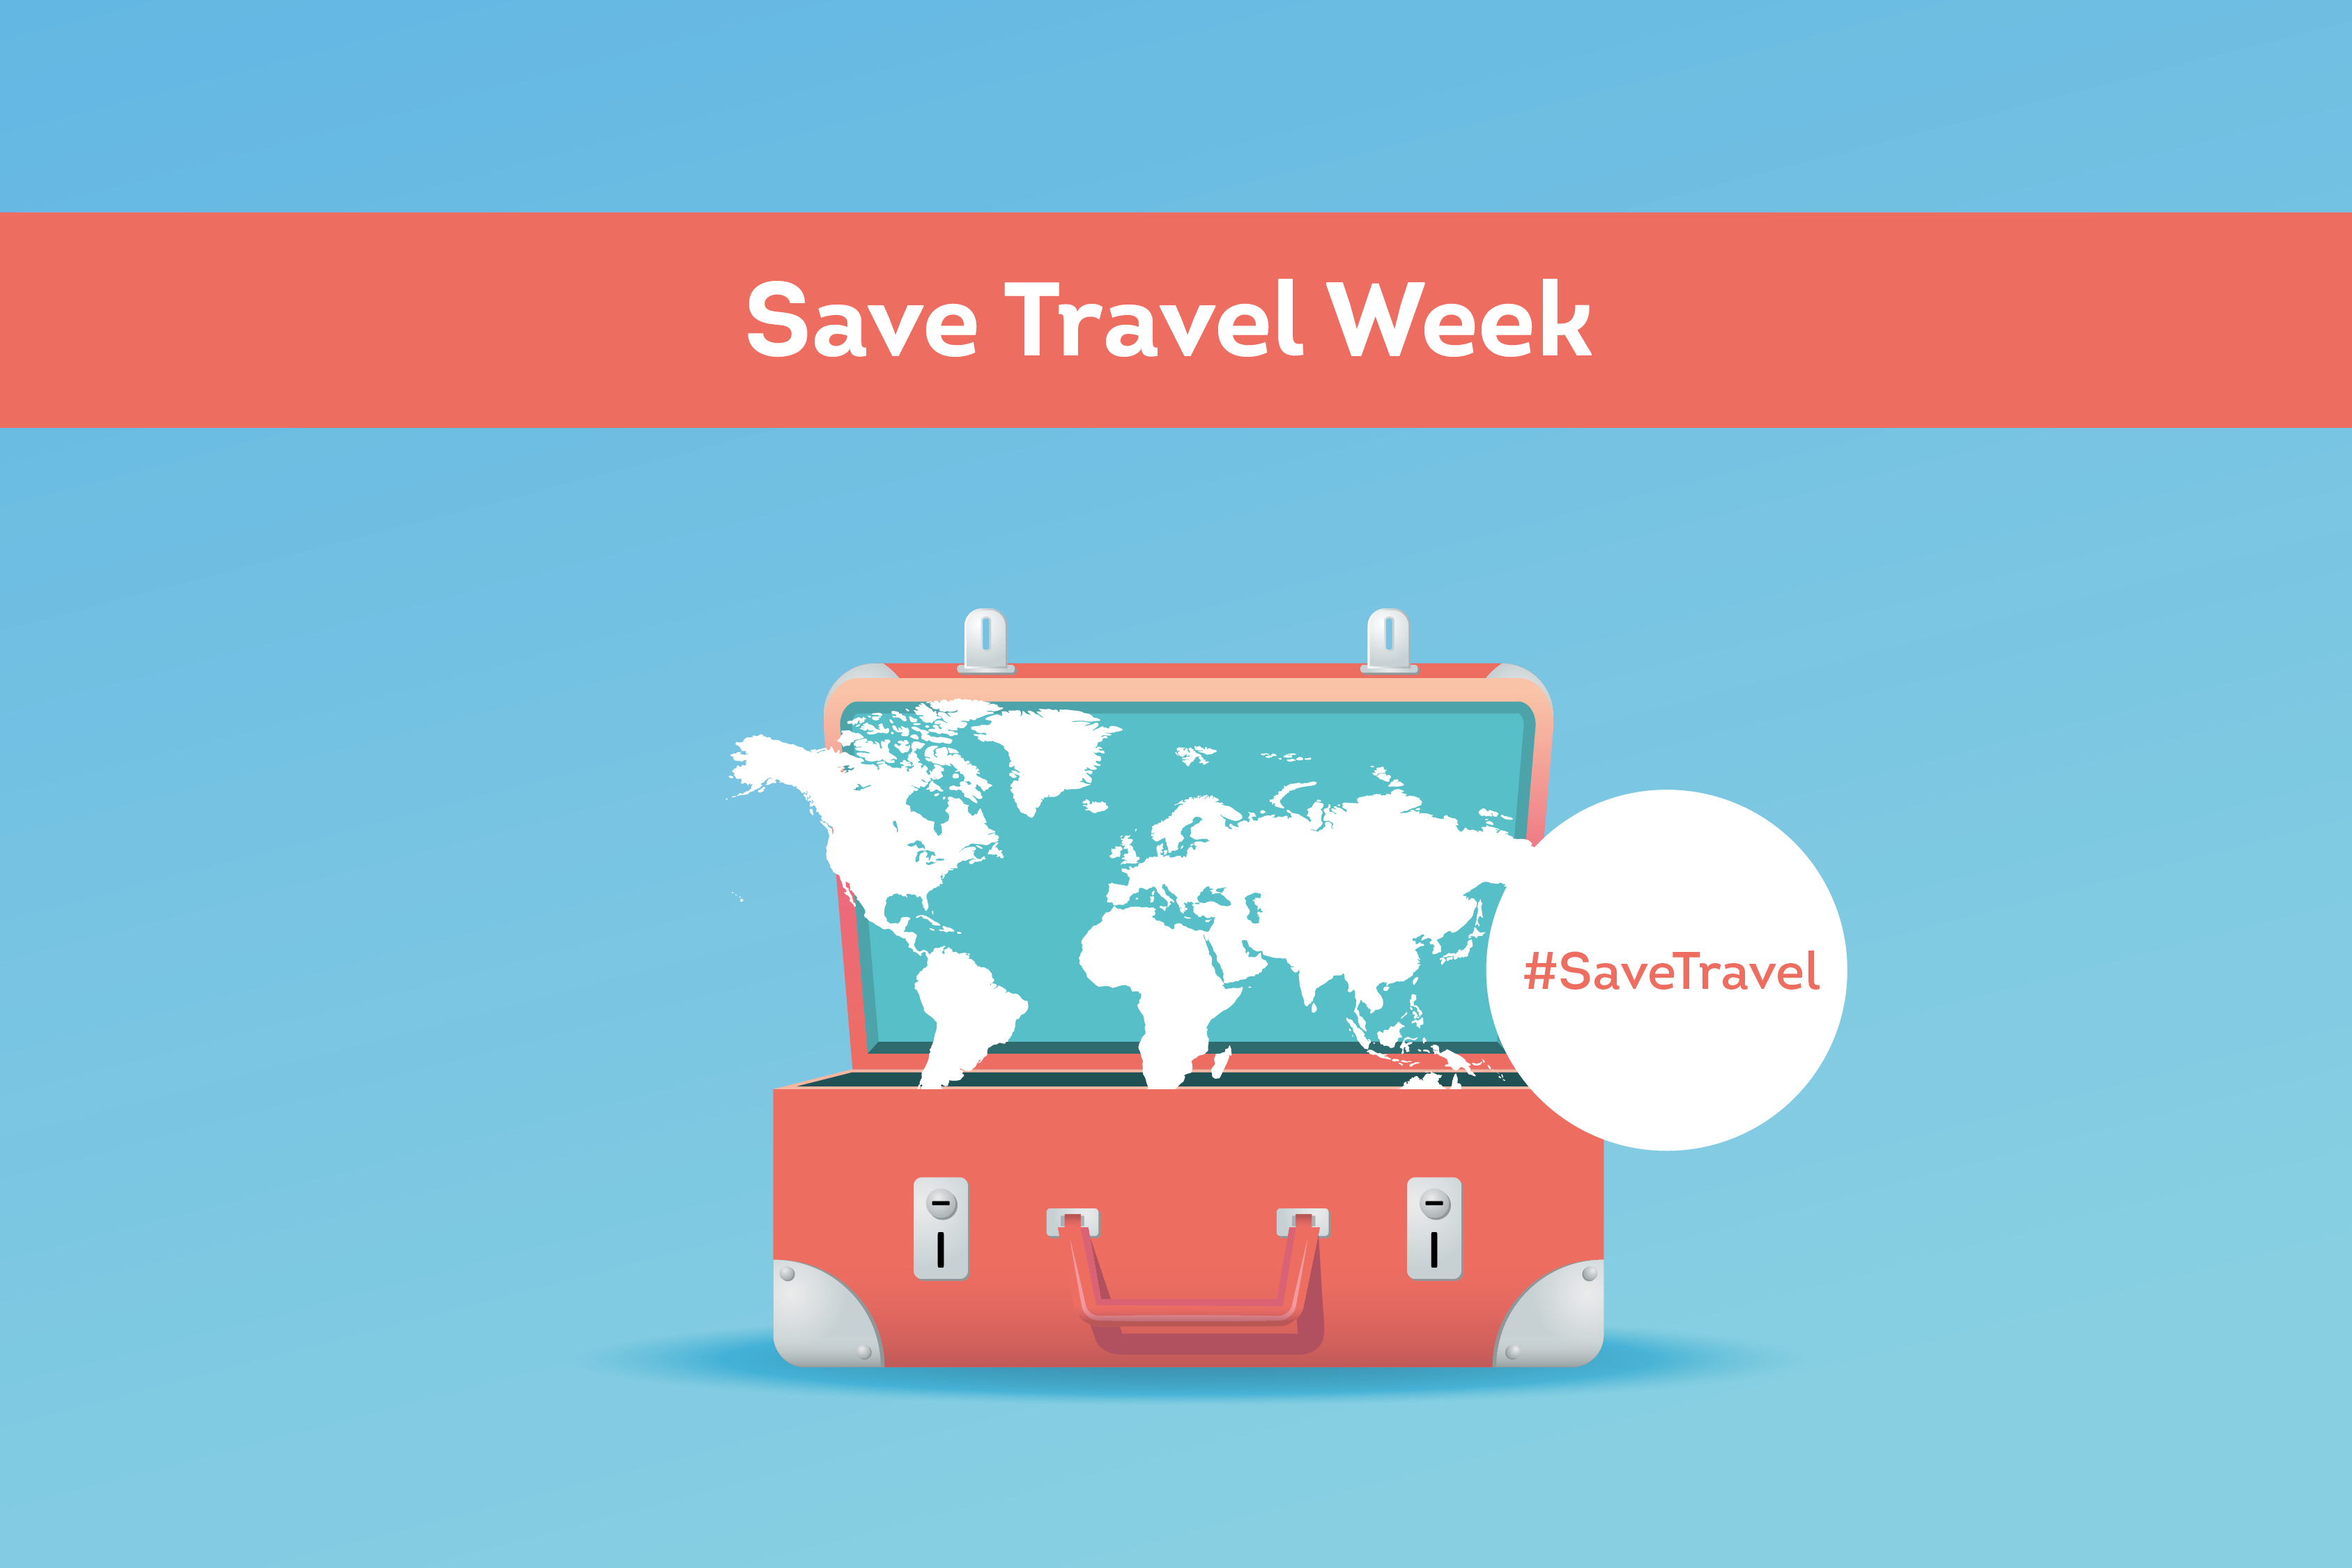 Take part in Save Travel Week